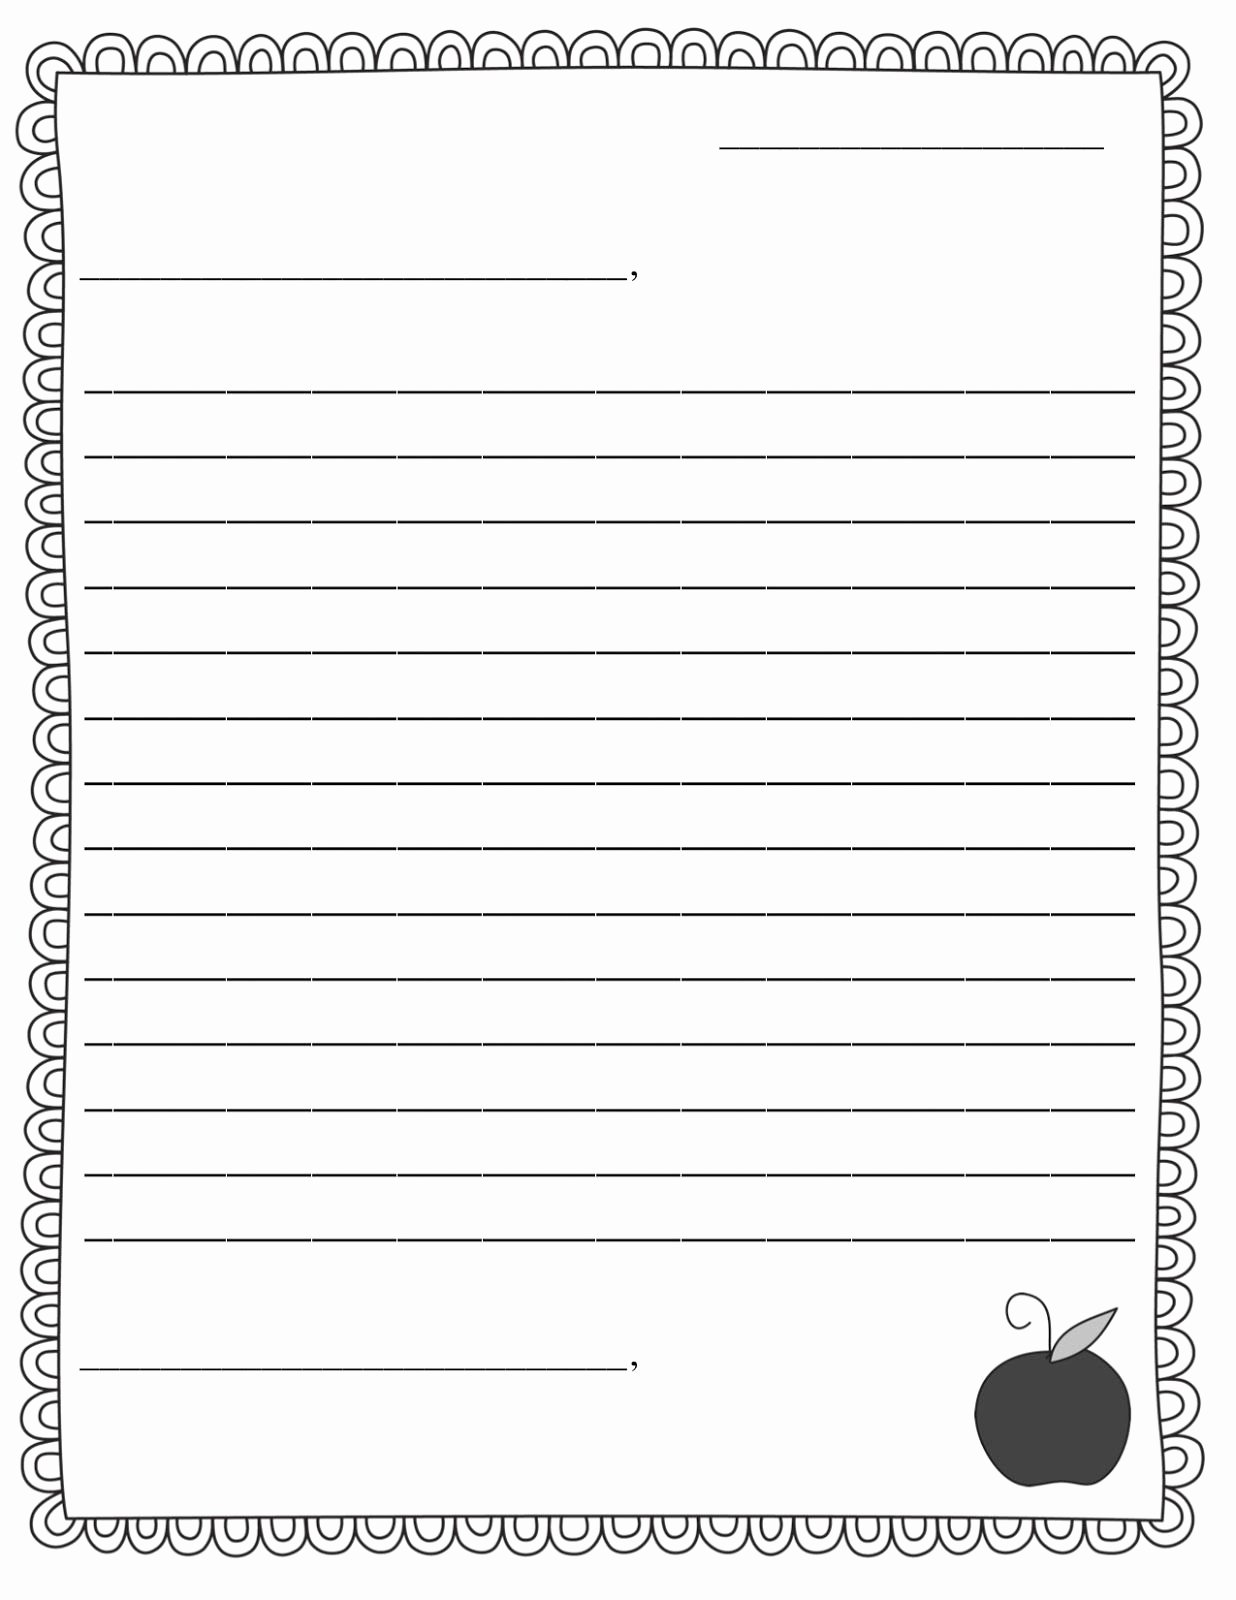 Pen Pal Letter format Best Of Letter Template Ks2 Google Search